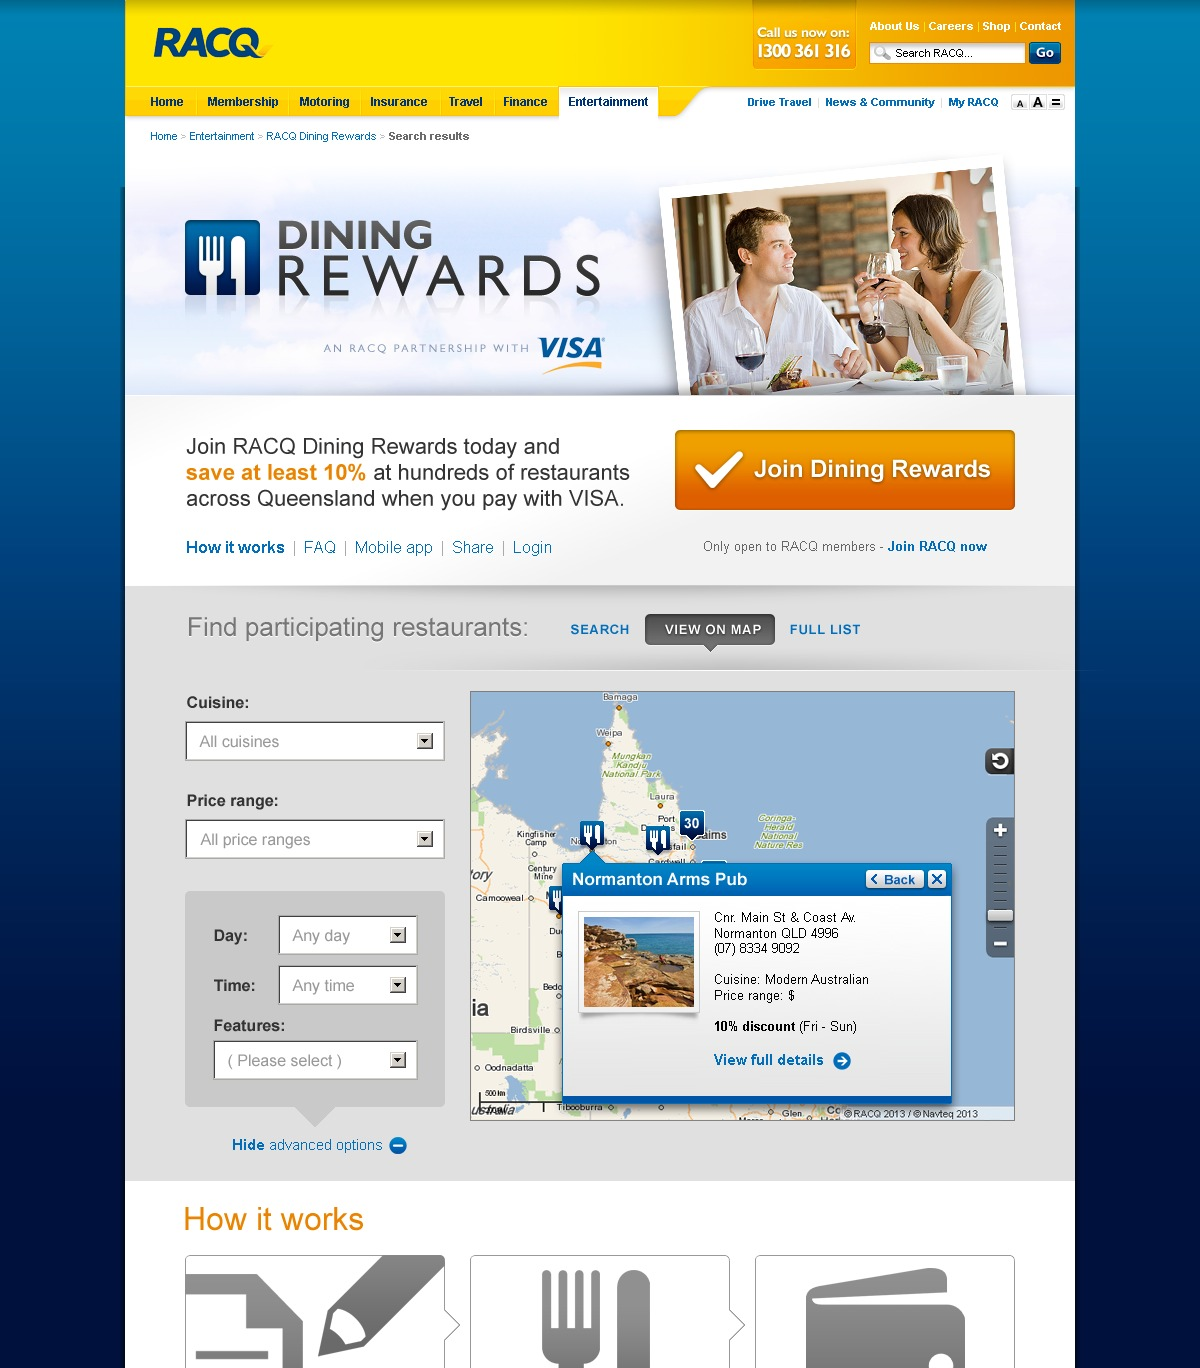 2013-03-Dining-rewards-landing-search-v10_0008_View-on-map-(Popup).jpg